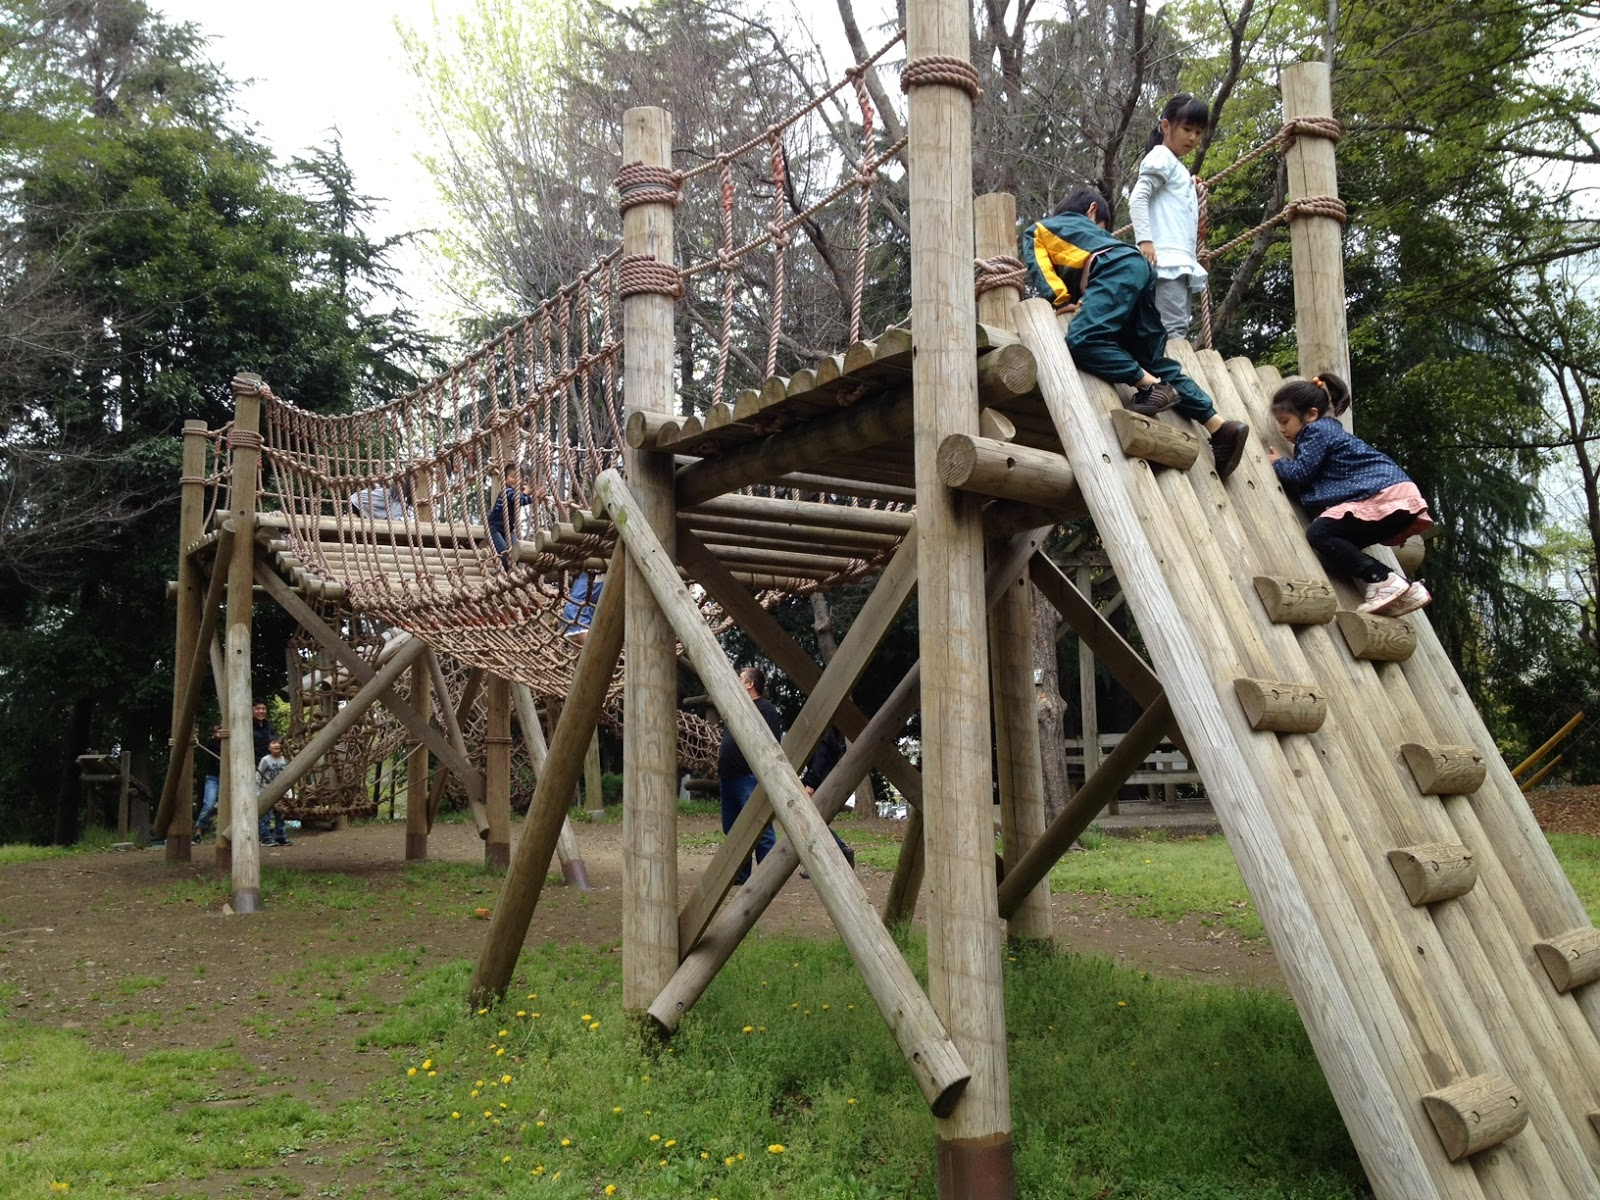 Marketing Japan: The Best Children's Sports Park and ...